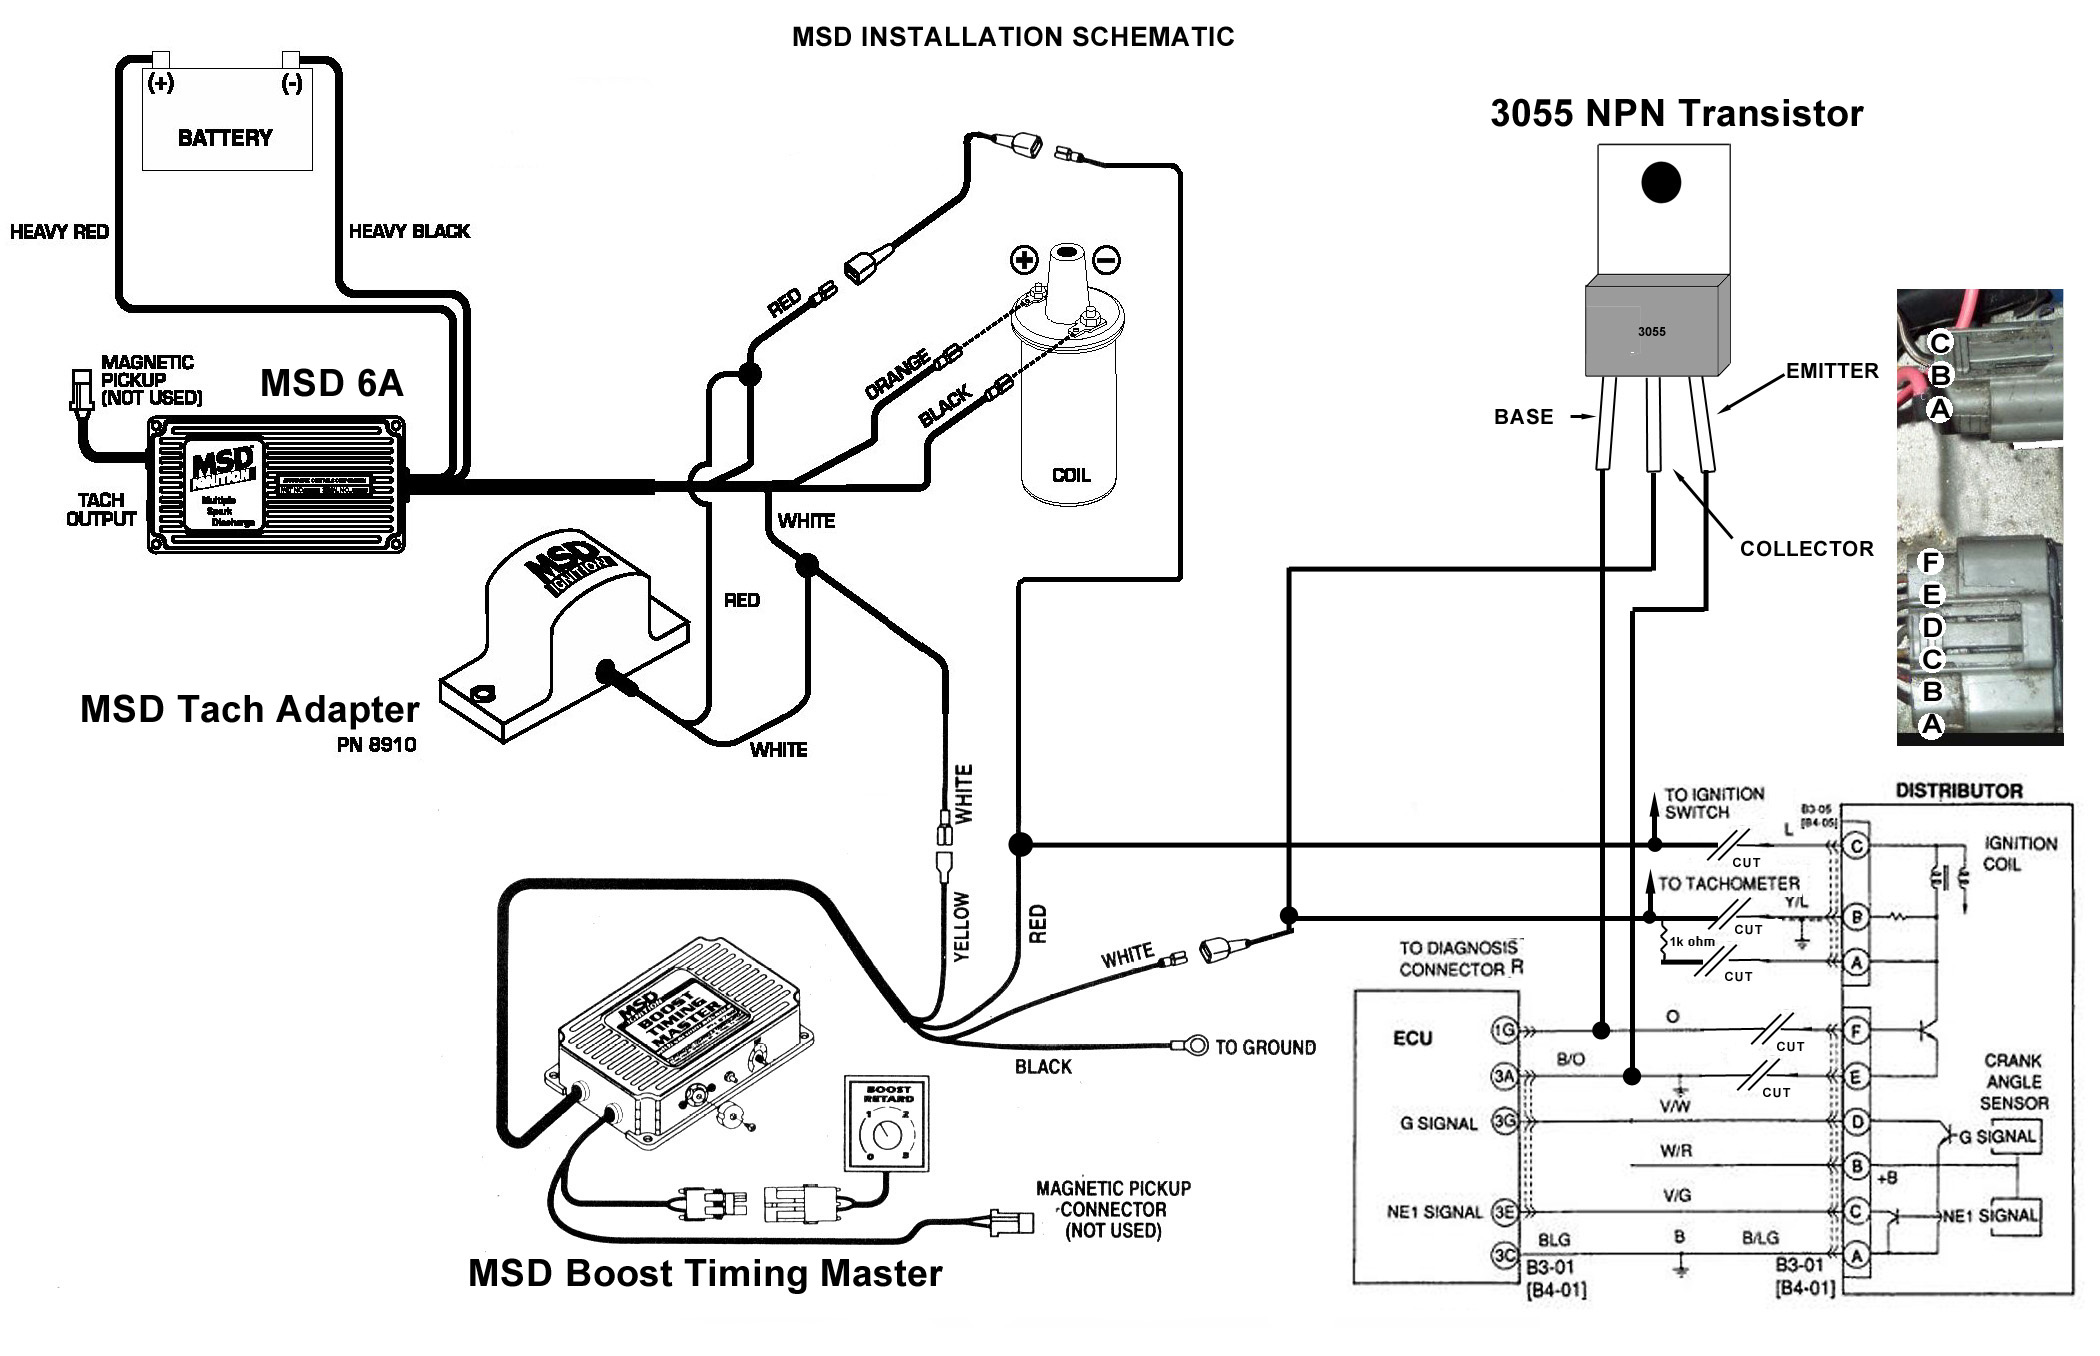 msd_complete msd wiring diagram mazda mx 6 forum mazda rx8 wiring diagram at readyjetset.co